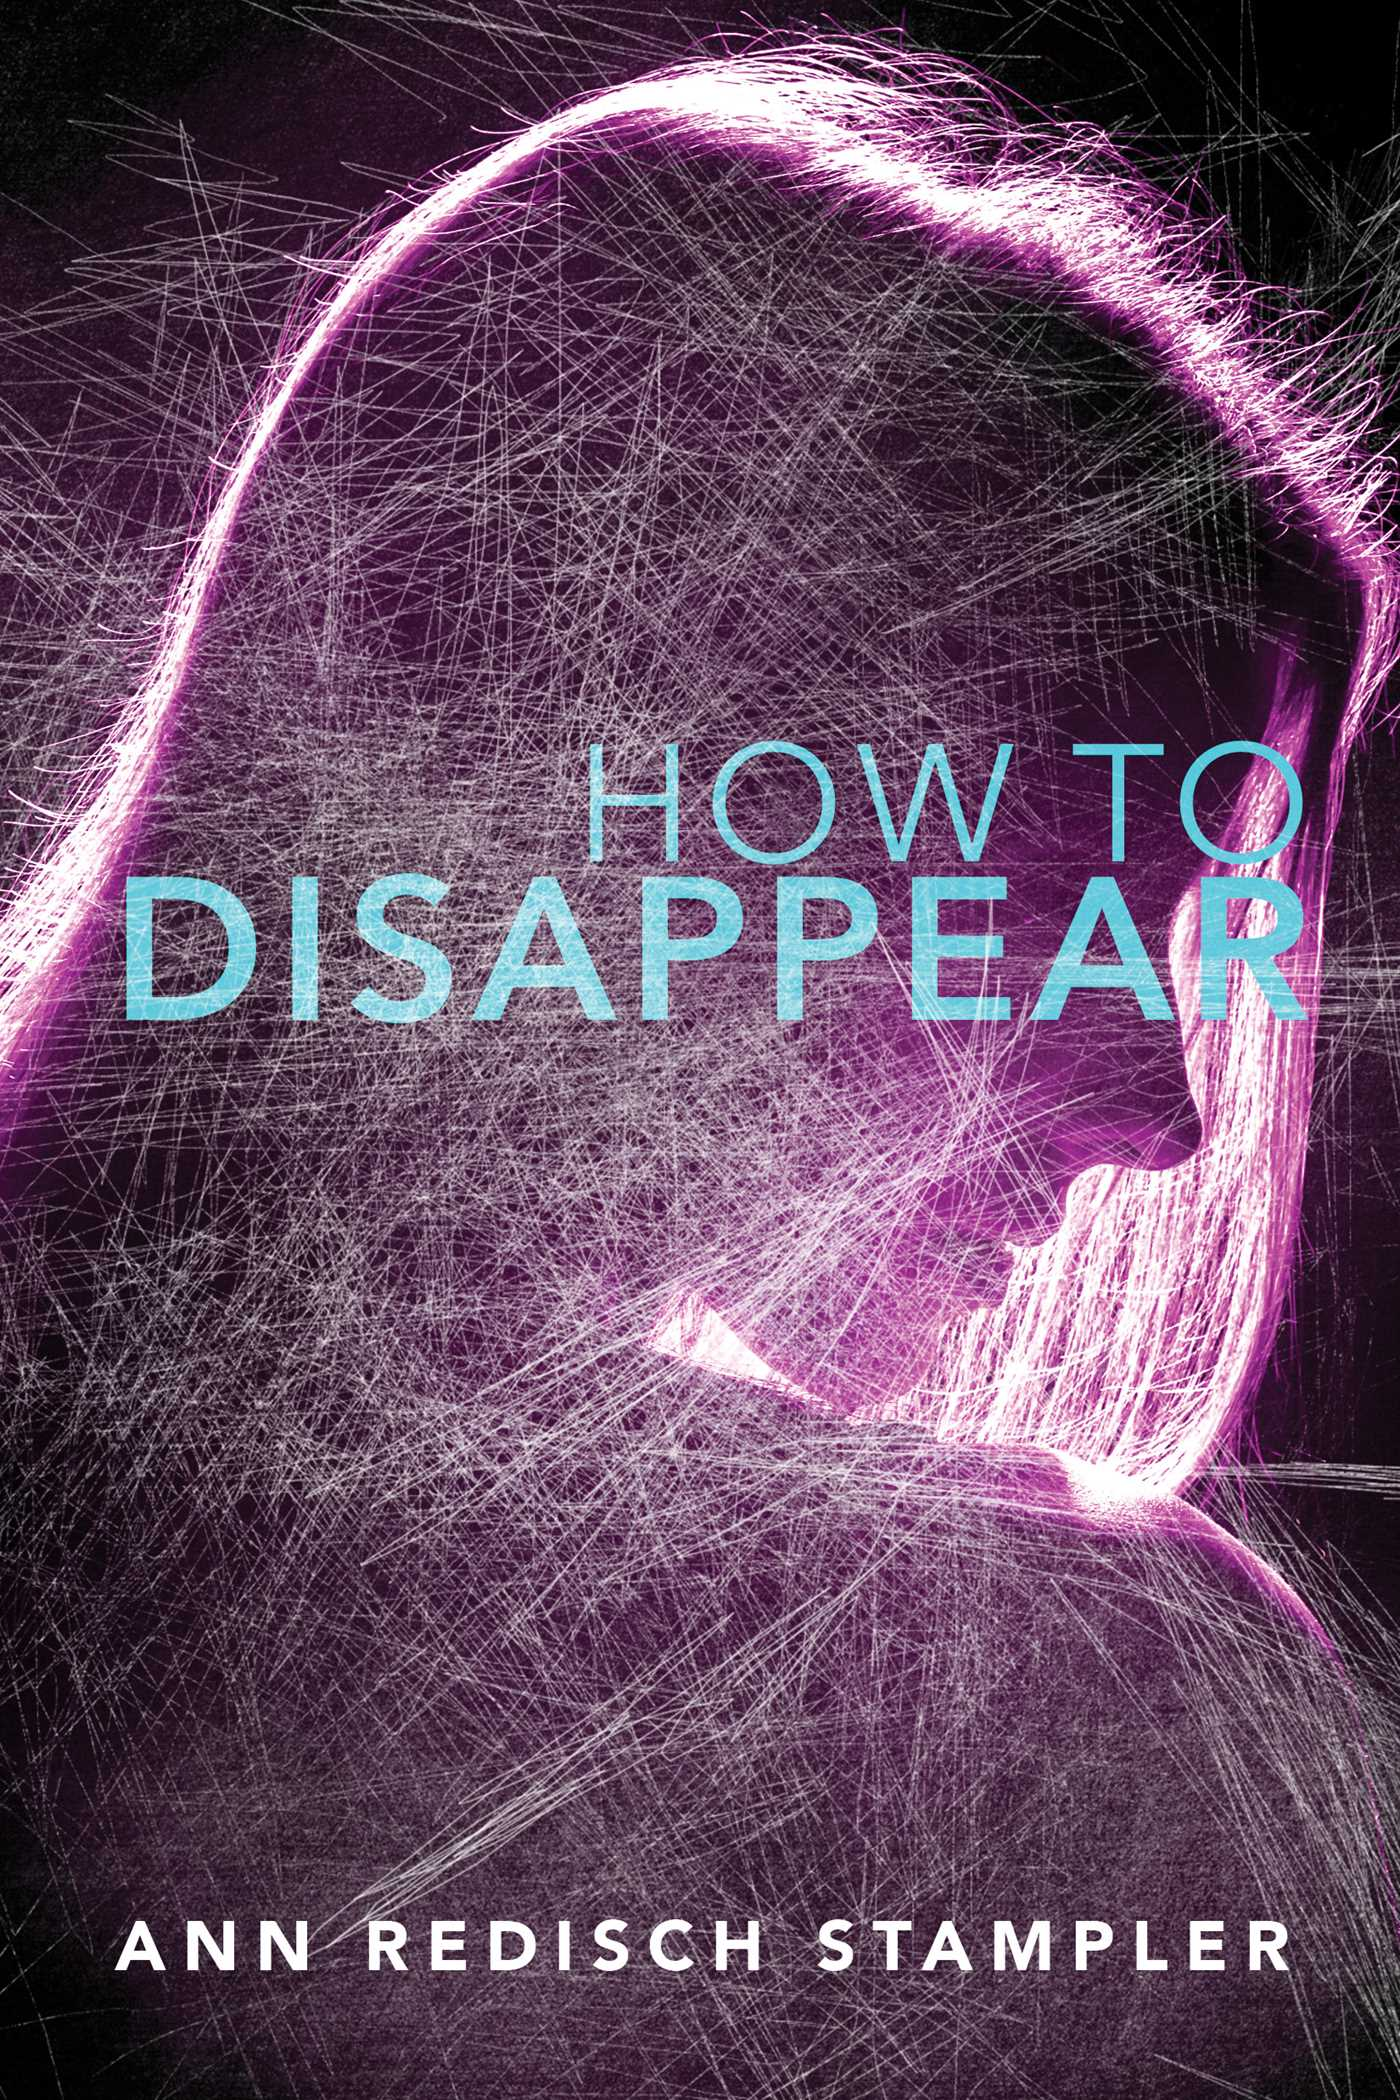 How to disappear 9781481443944 hr